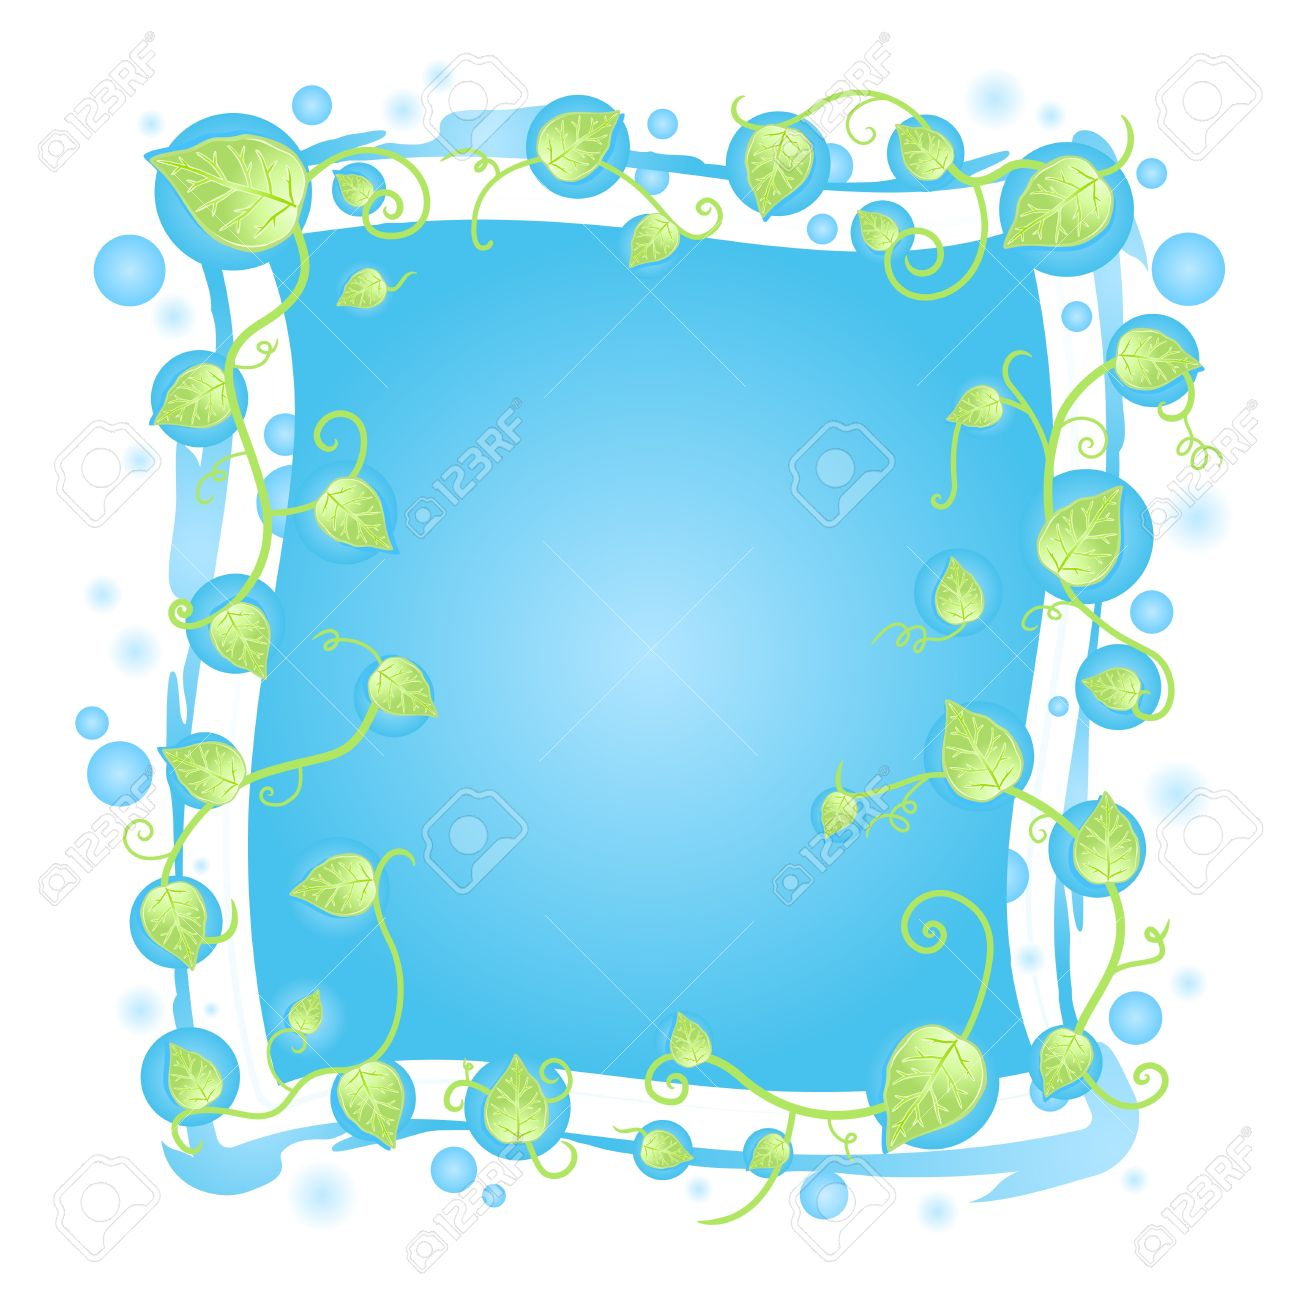 illustration of a fresh floral frame design with leaf vines border, blurred blue drops and funky details around the banner. Stock Vector - 6953223